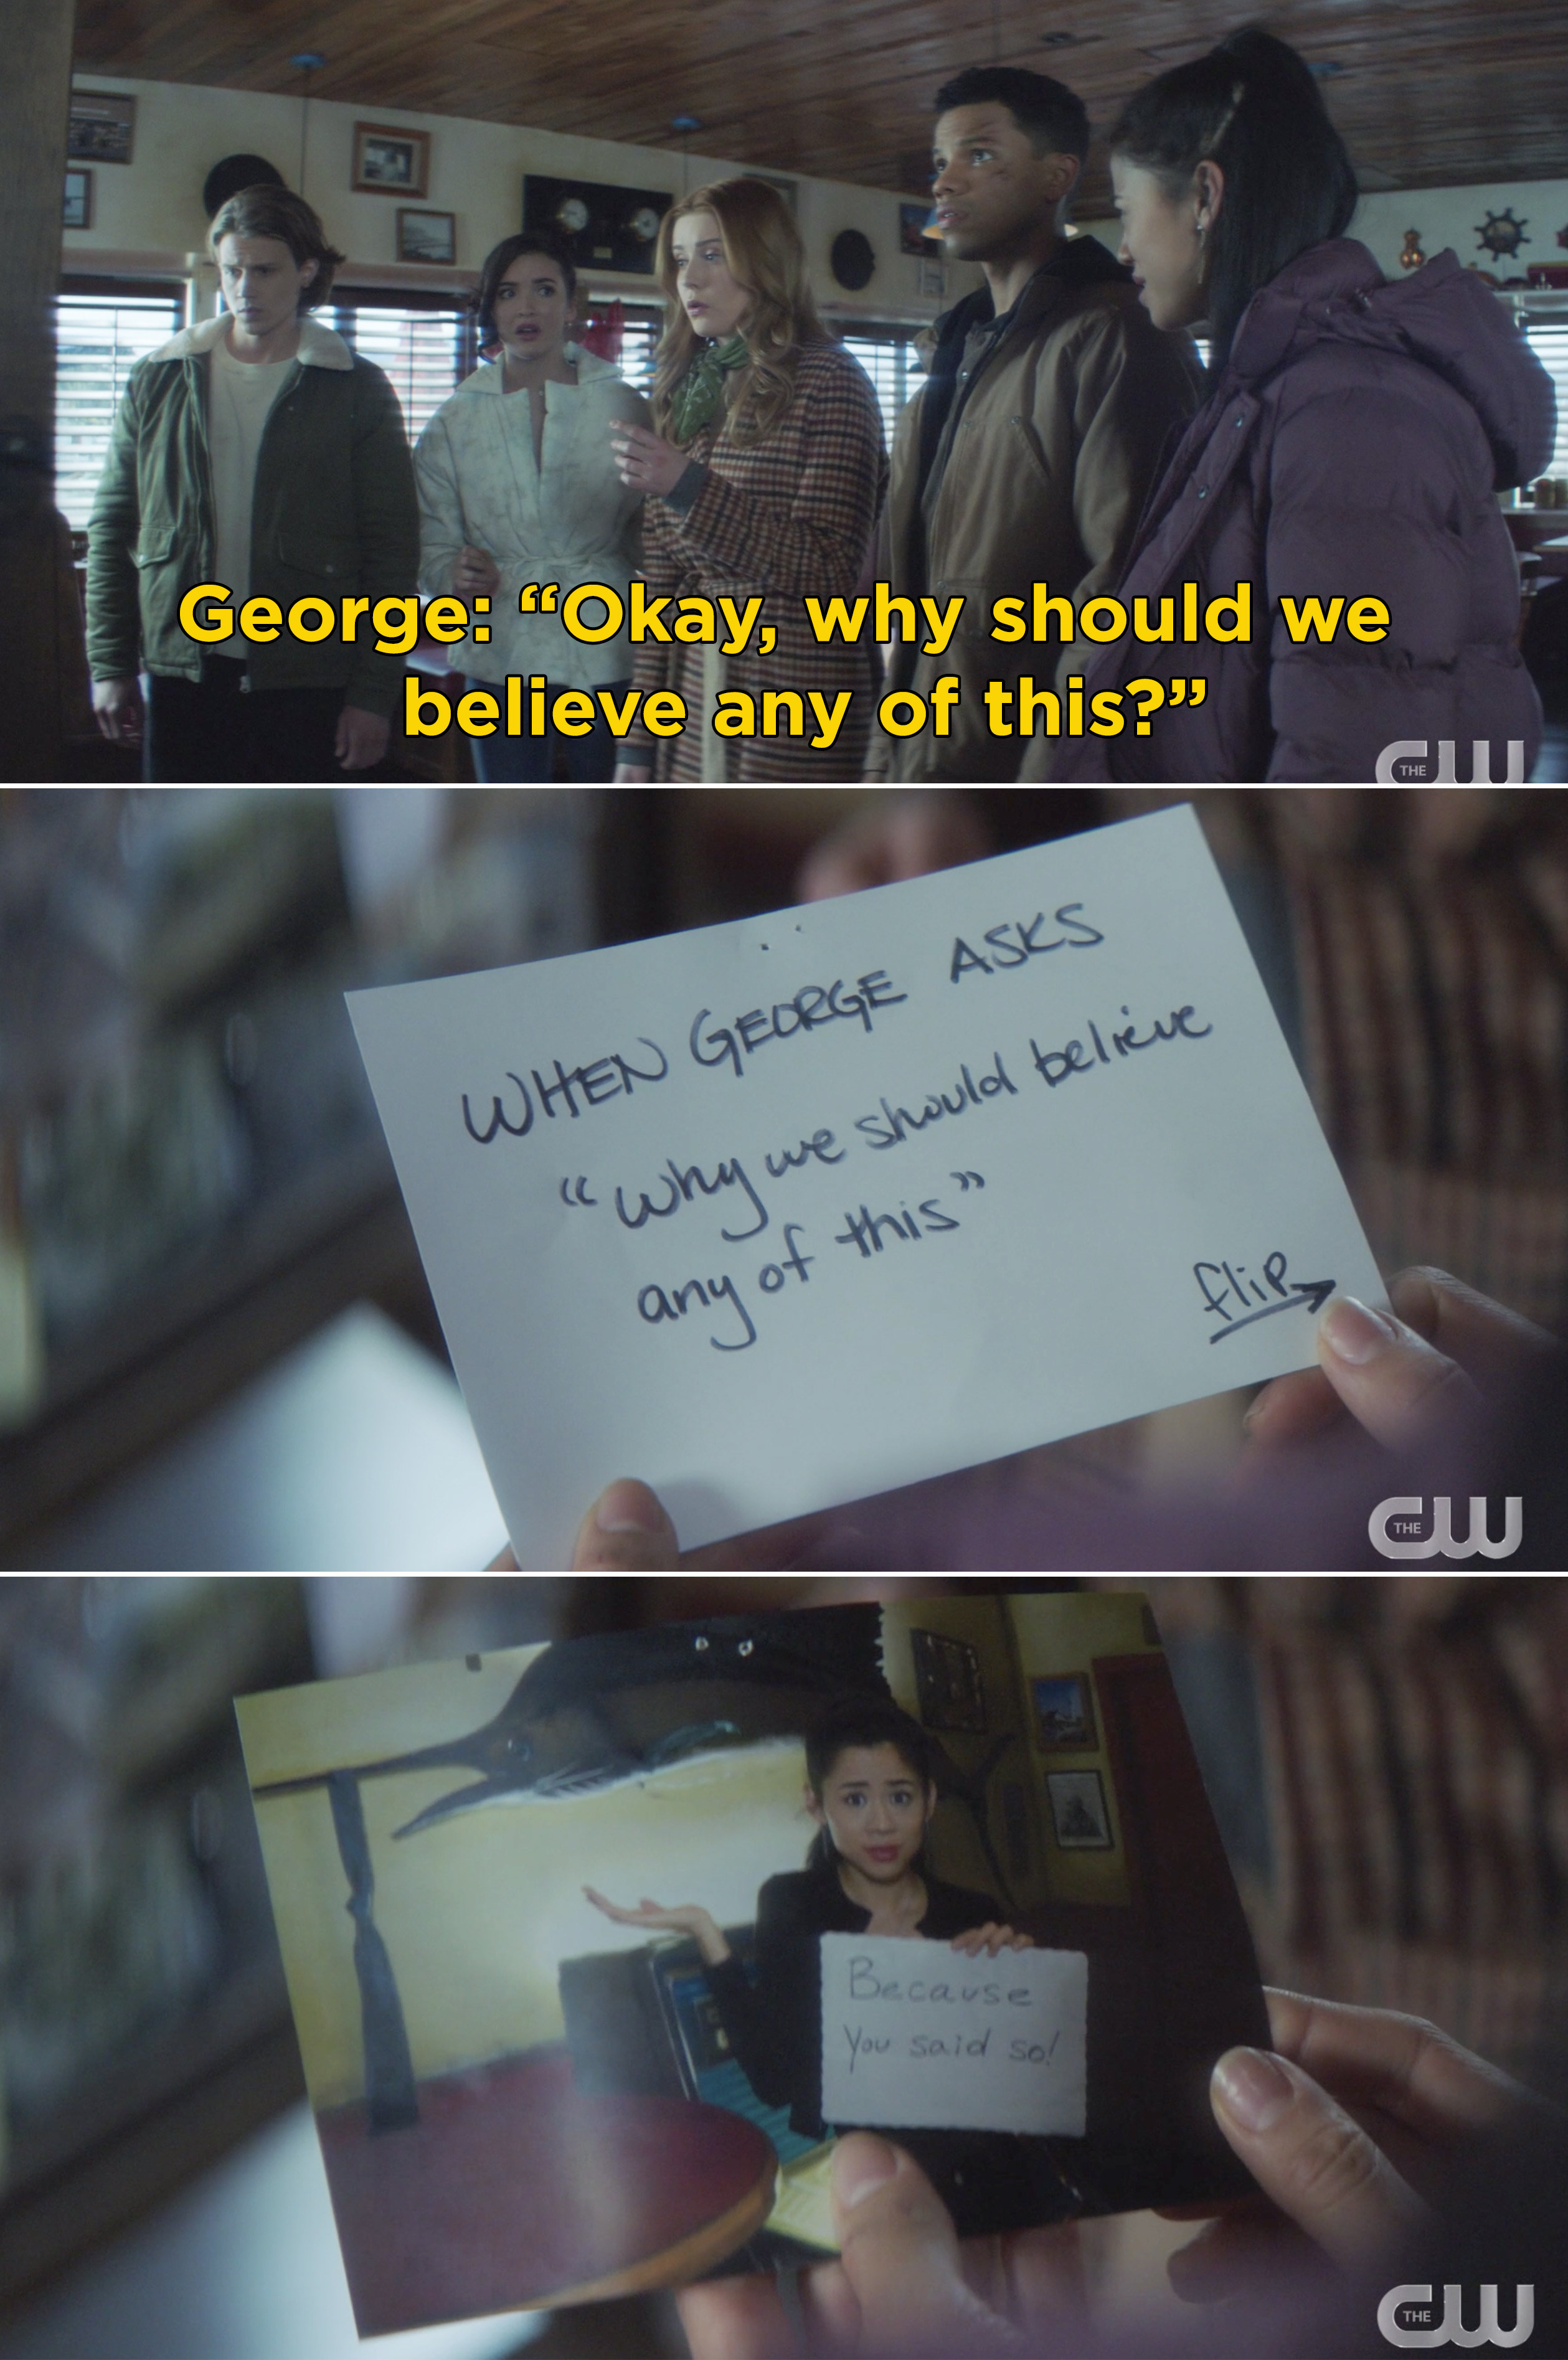 """George reading a note from her past self that says, """"When George asks, 'Why we should believe any of this"""" and George holding a sign saying, """"Because you said so"""""""